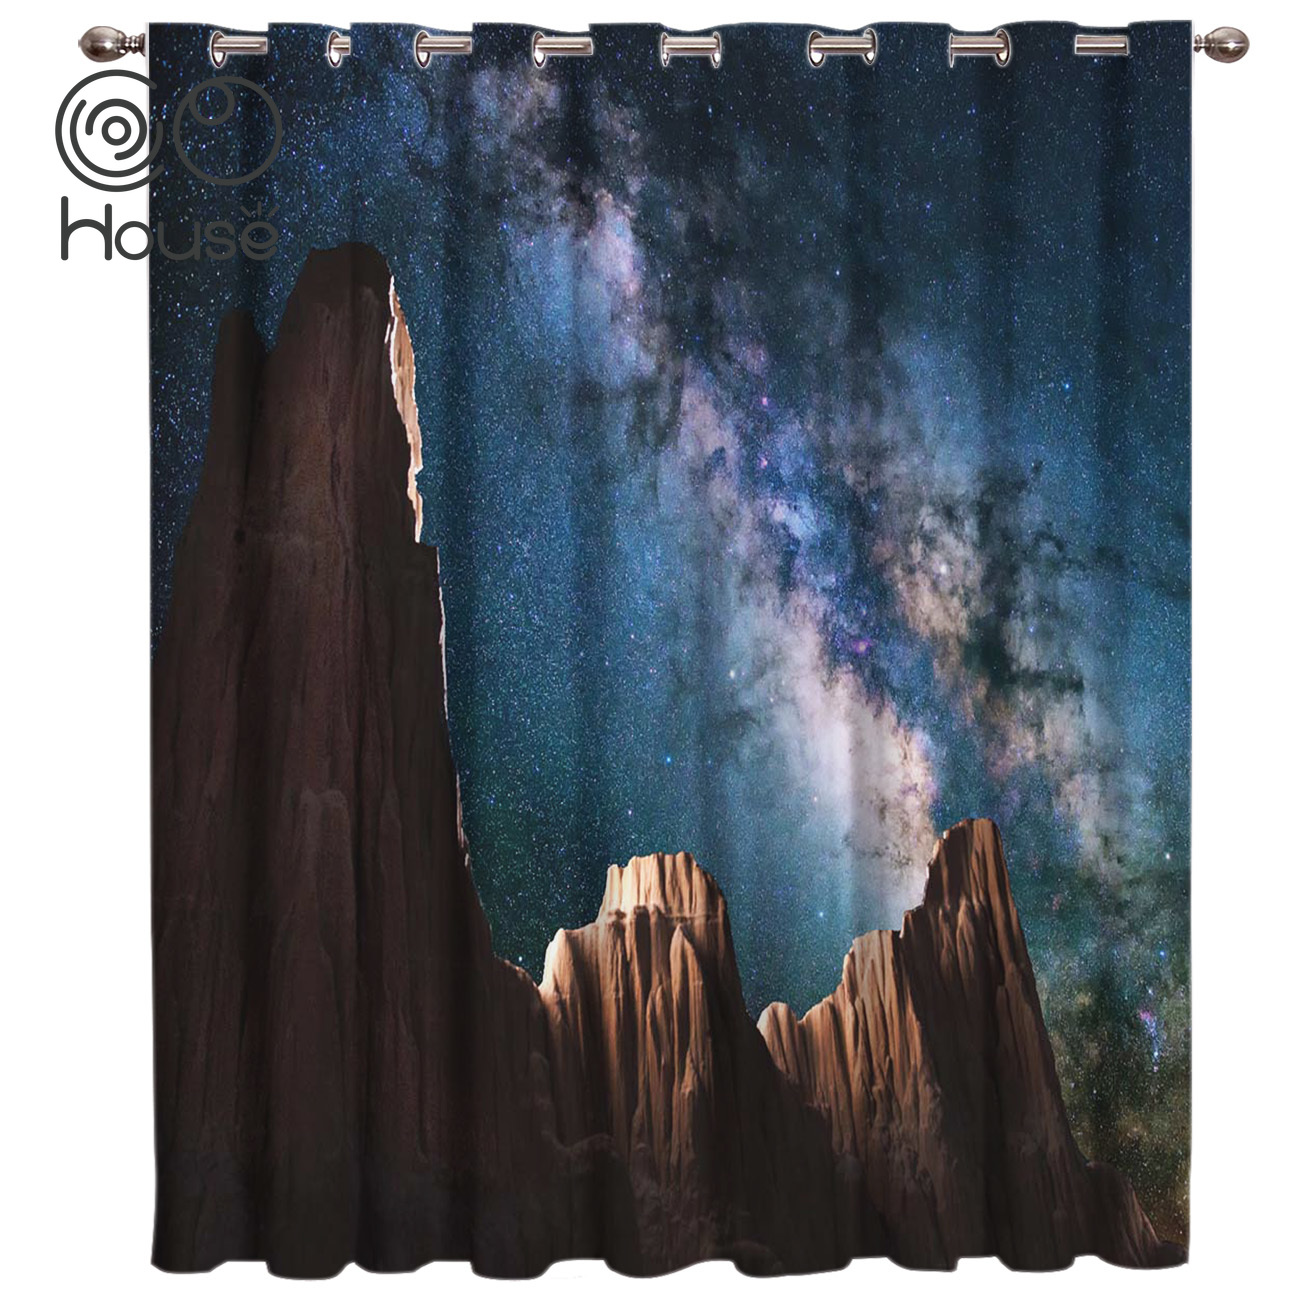 CoCoHouse Canyon Starry Sky Galaxy Window Curtains Dark Curtains Bathroom Outdoor Bedroom Kitchen Fabric Decor Swag Kids Curtain